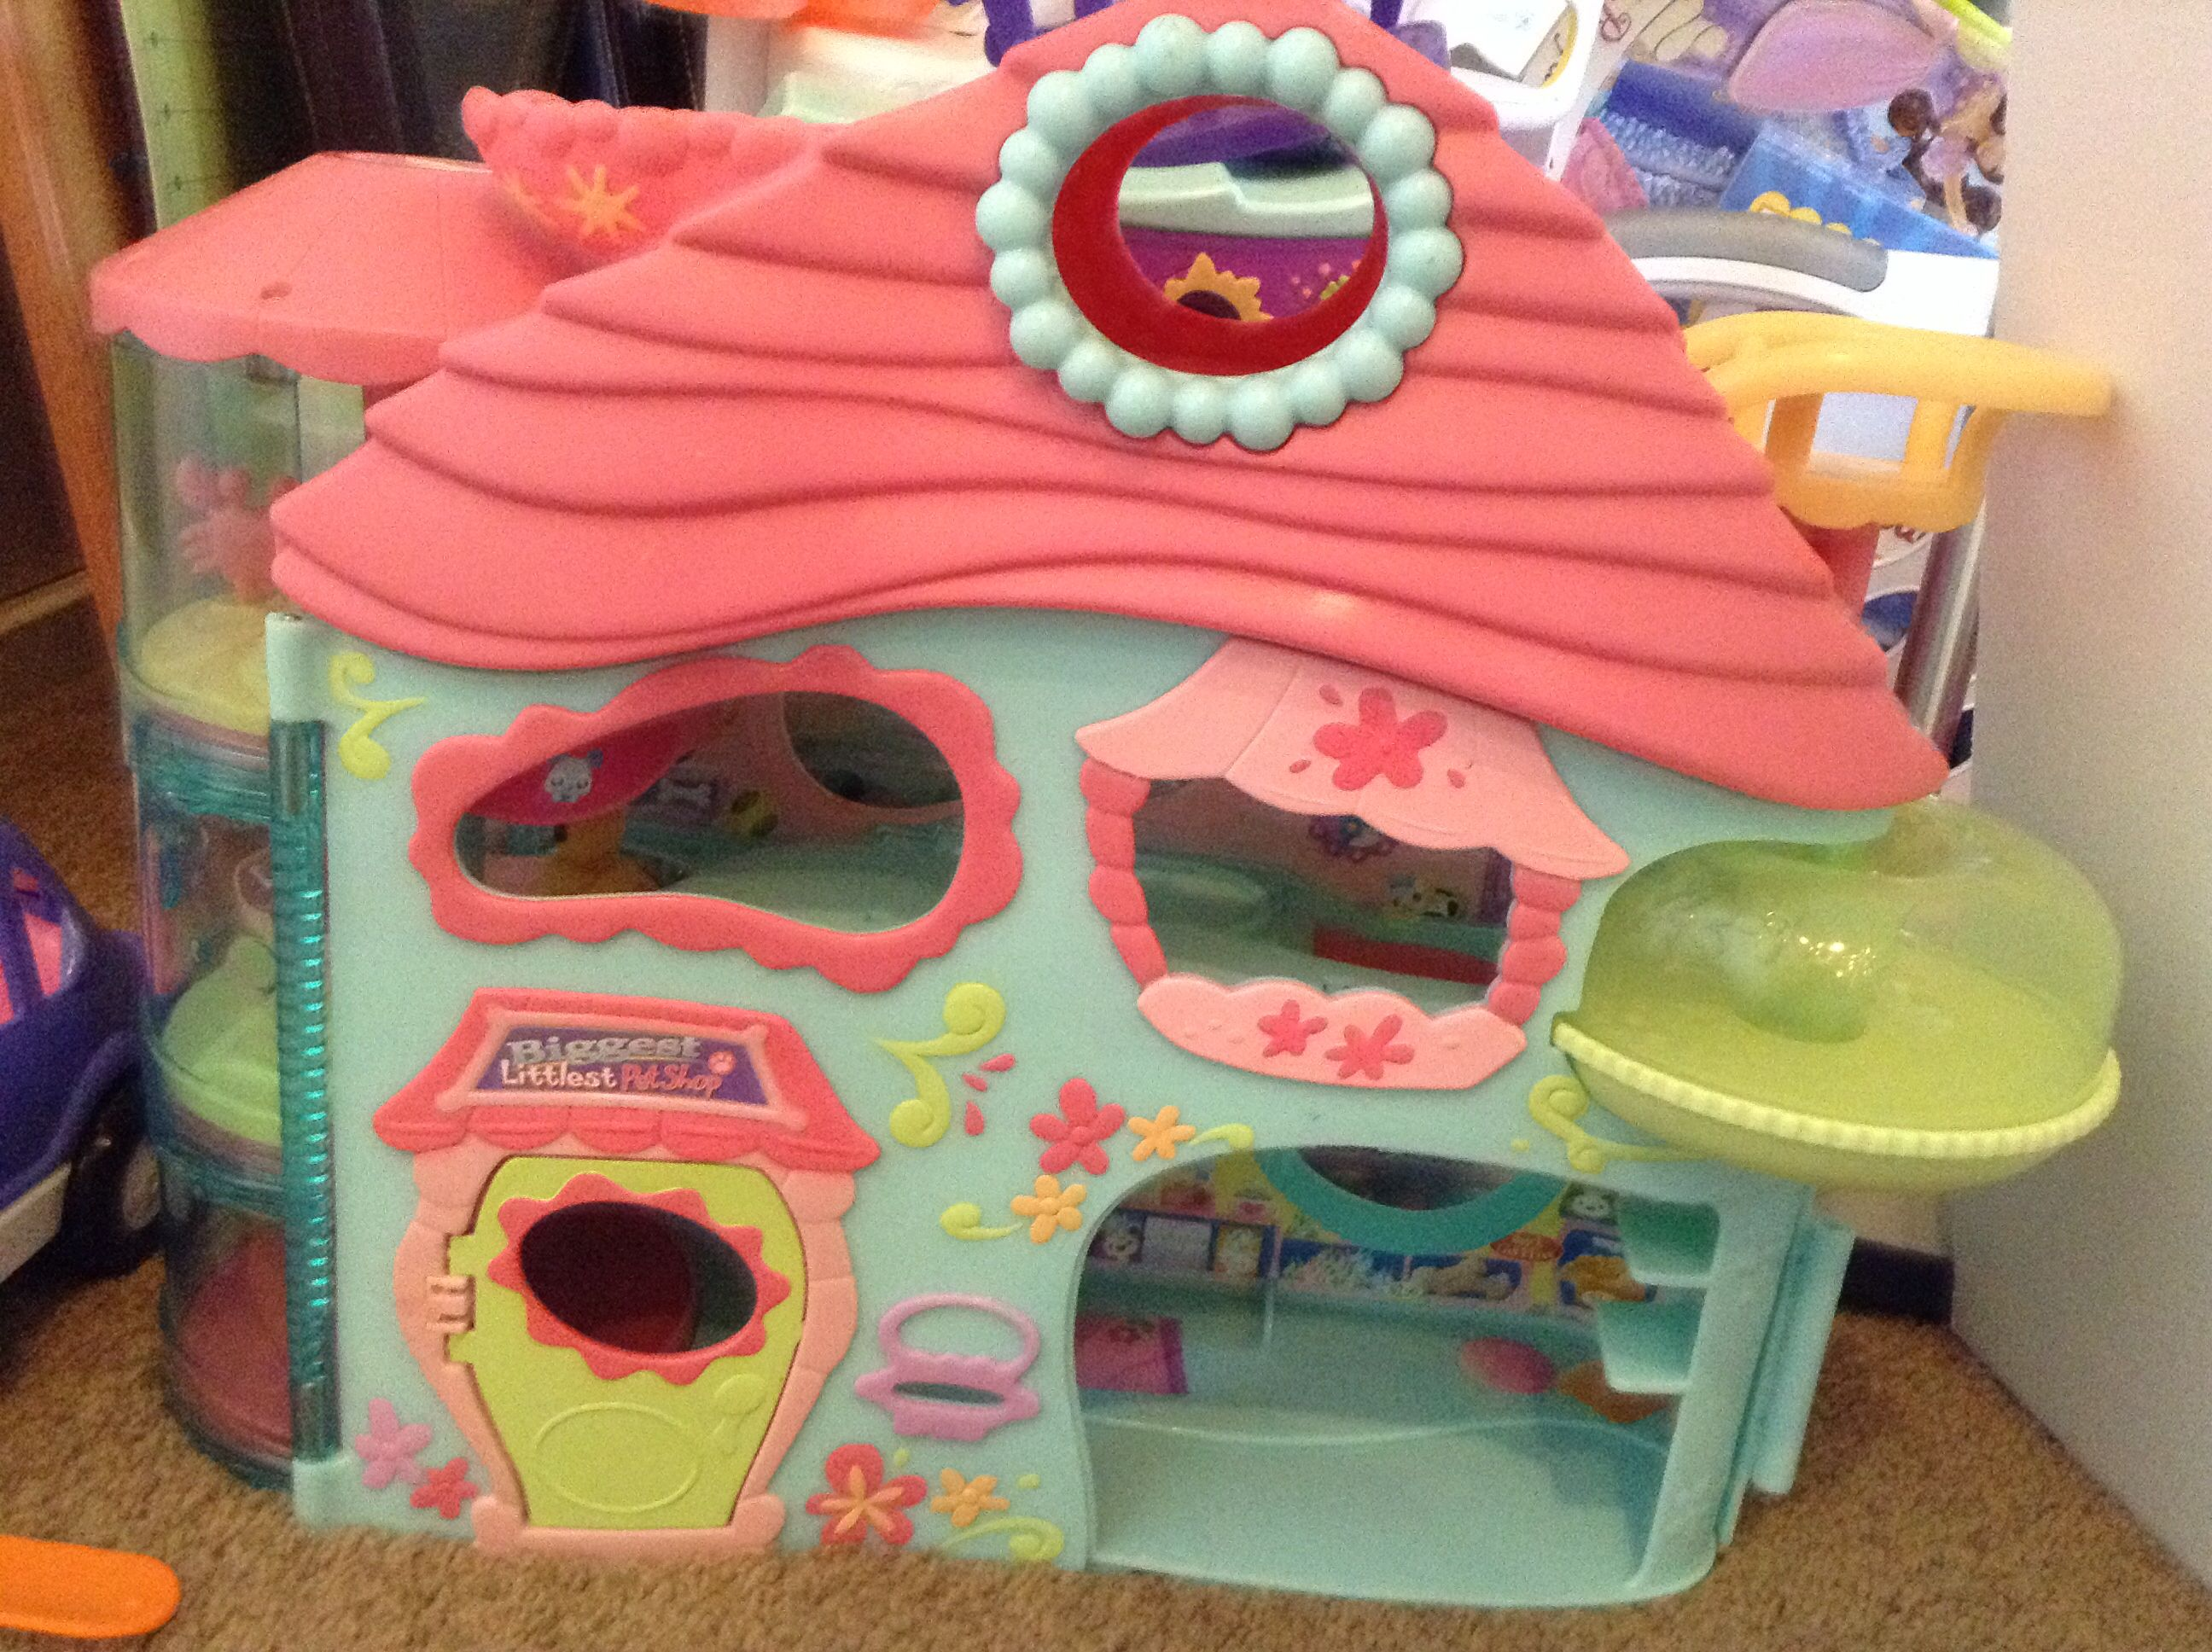 Littlest pet shop house it's the biggest house you can get